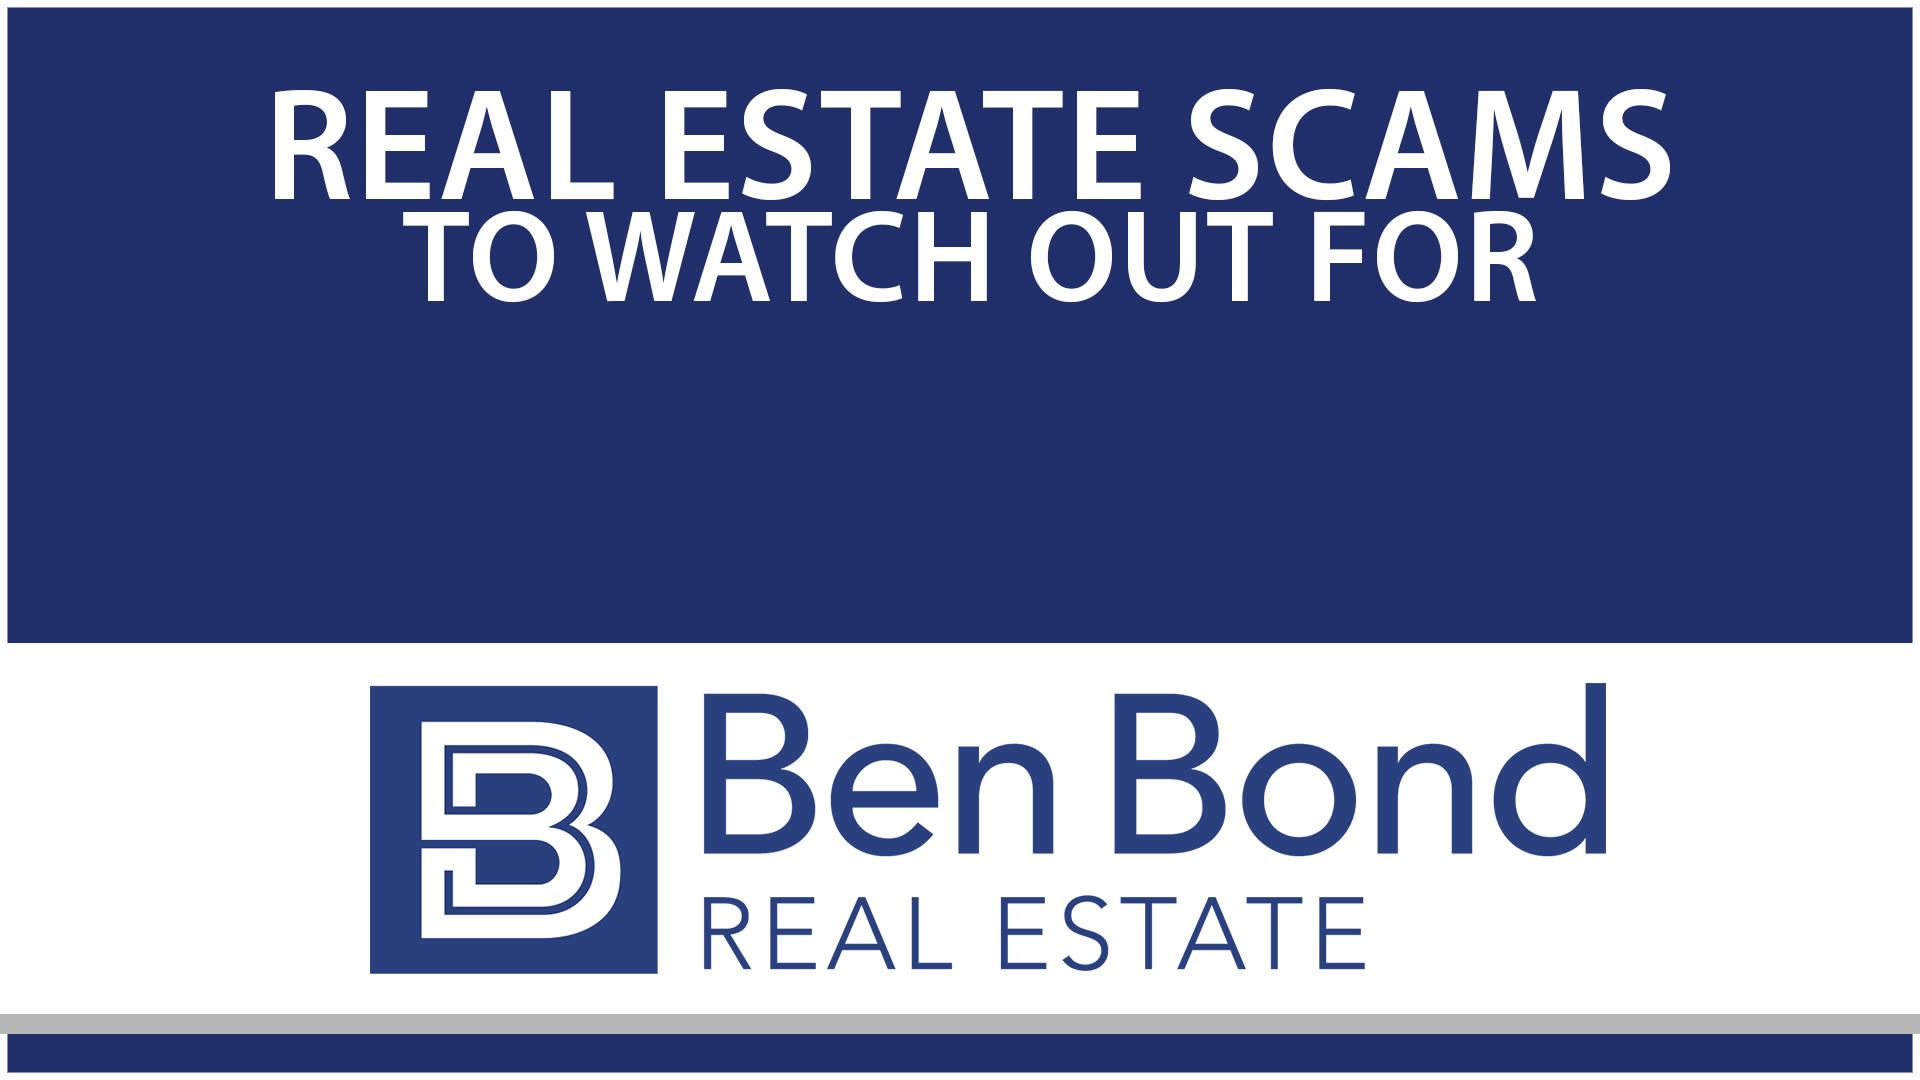 Avoid These 2 Real Estate Scams